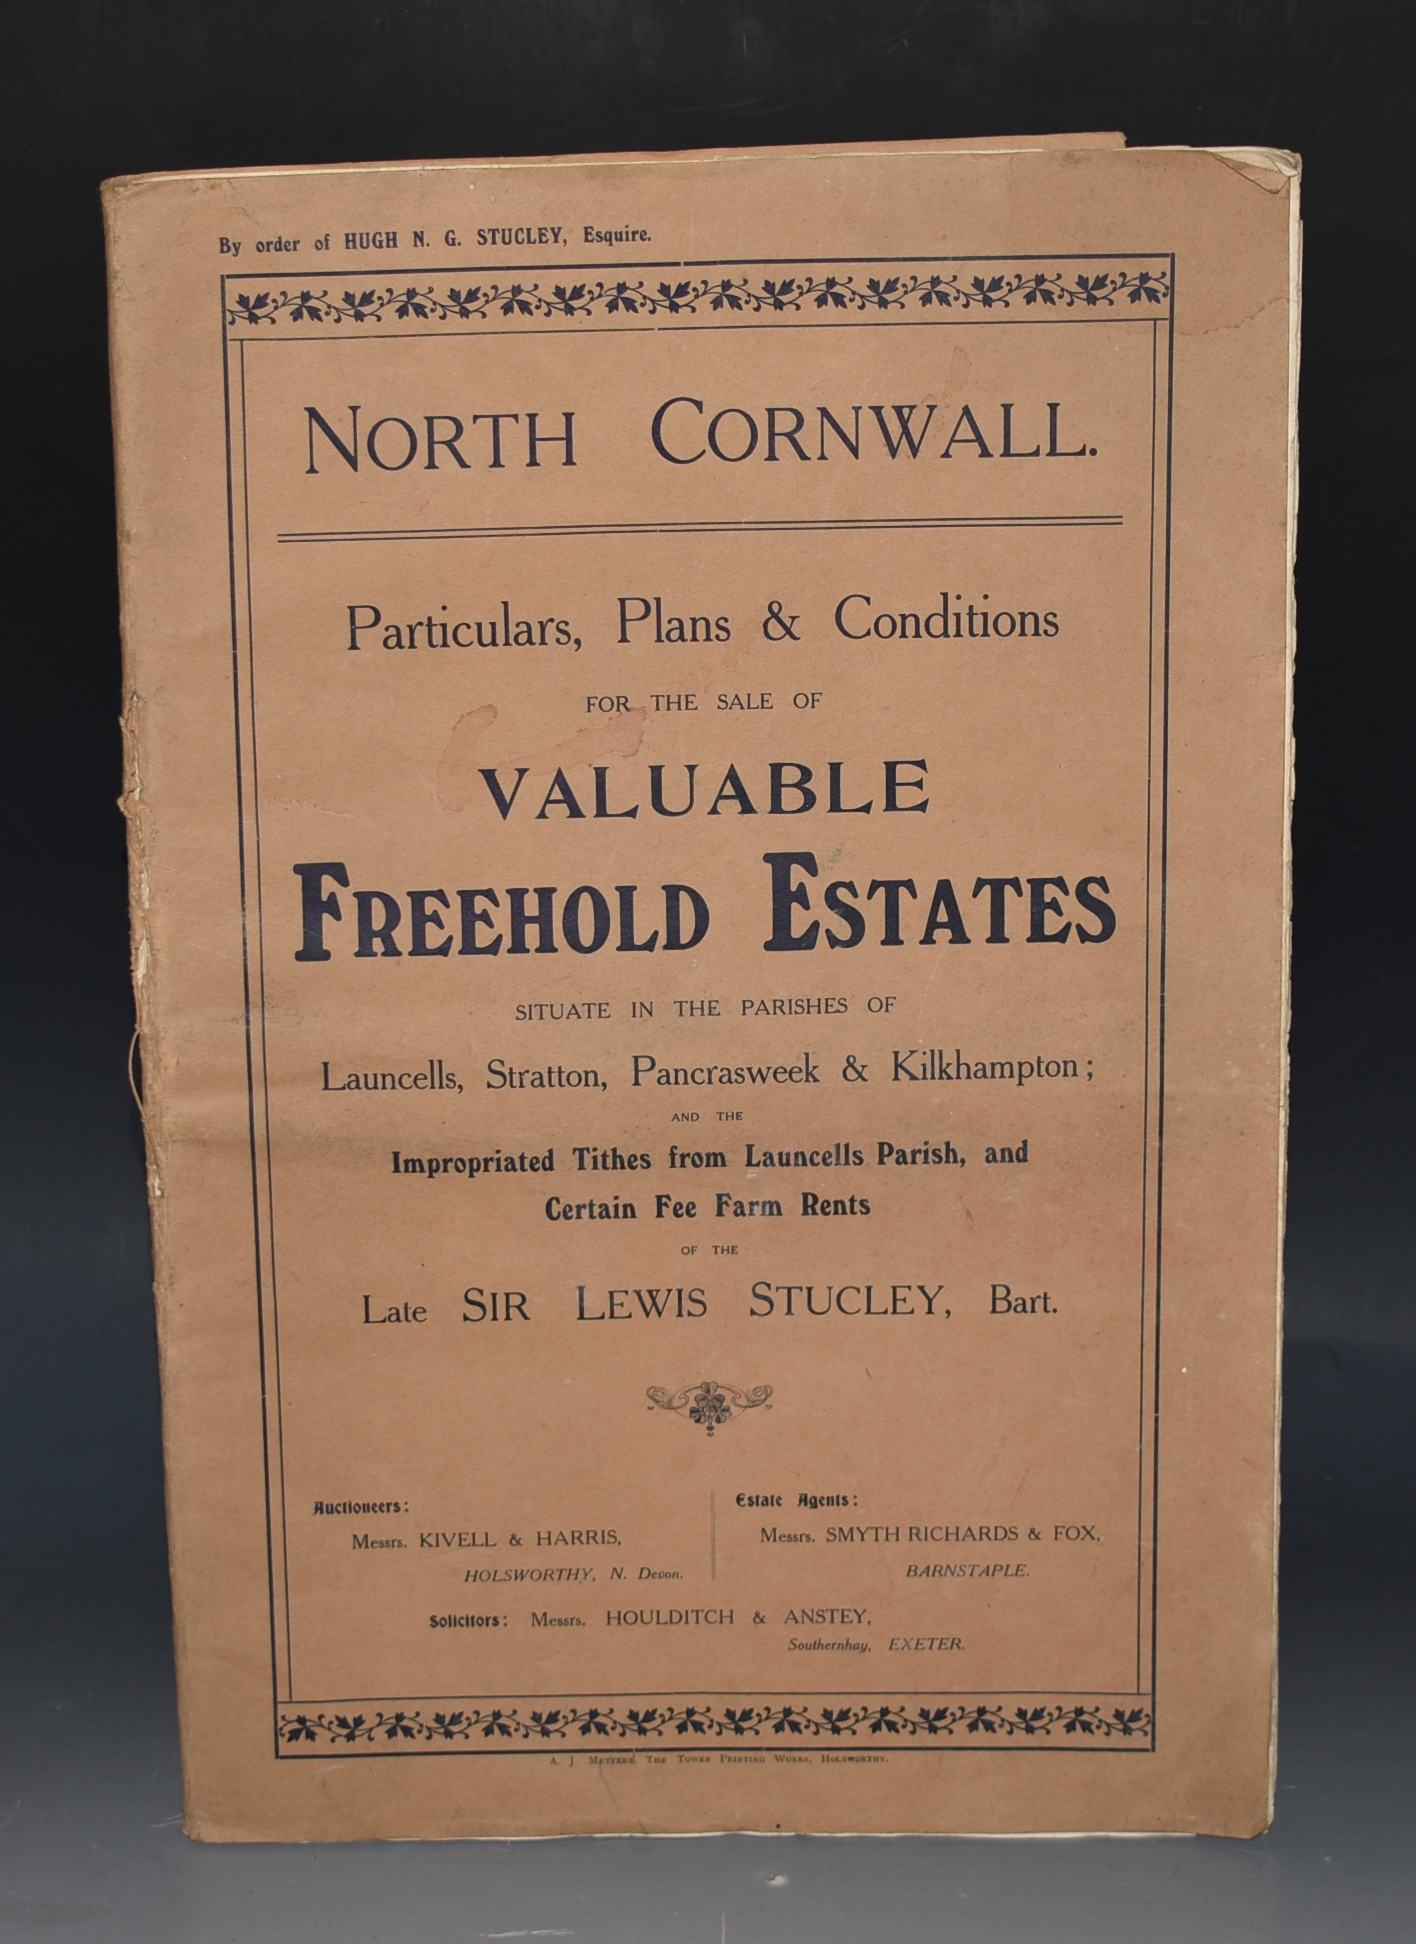 "Image for Particulars, Plans & Conditions For The Sale of Valuable Freehold Estates in the Parishes of Launcells, Stratton, Pancrasweek & Kilhampton, of the Late Sir Lewis Stucley. North Cornwall. North Cornwall, in the Parish of Launcells. Particulars with Plans of about 2,437 Acres, of the Late Sir Lewis Stucley's Freehold and Leasehold Estates, situate in the above parish, comprising ""Launcells Barton,"" &c &c... and Several Small Holdings, Cottages and Valuable Accommodation Lands. To be offered for Sale by Public Auction by Messrs. Kivell & Harris. 1911. By Order of Hugh N.G. Stucley, Esq."